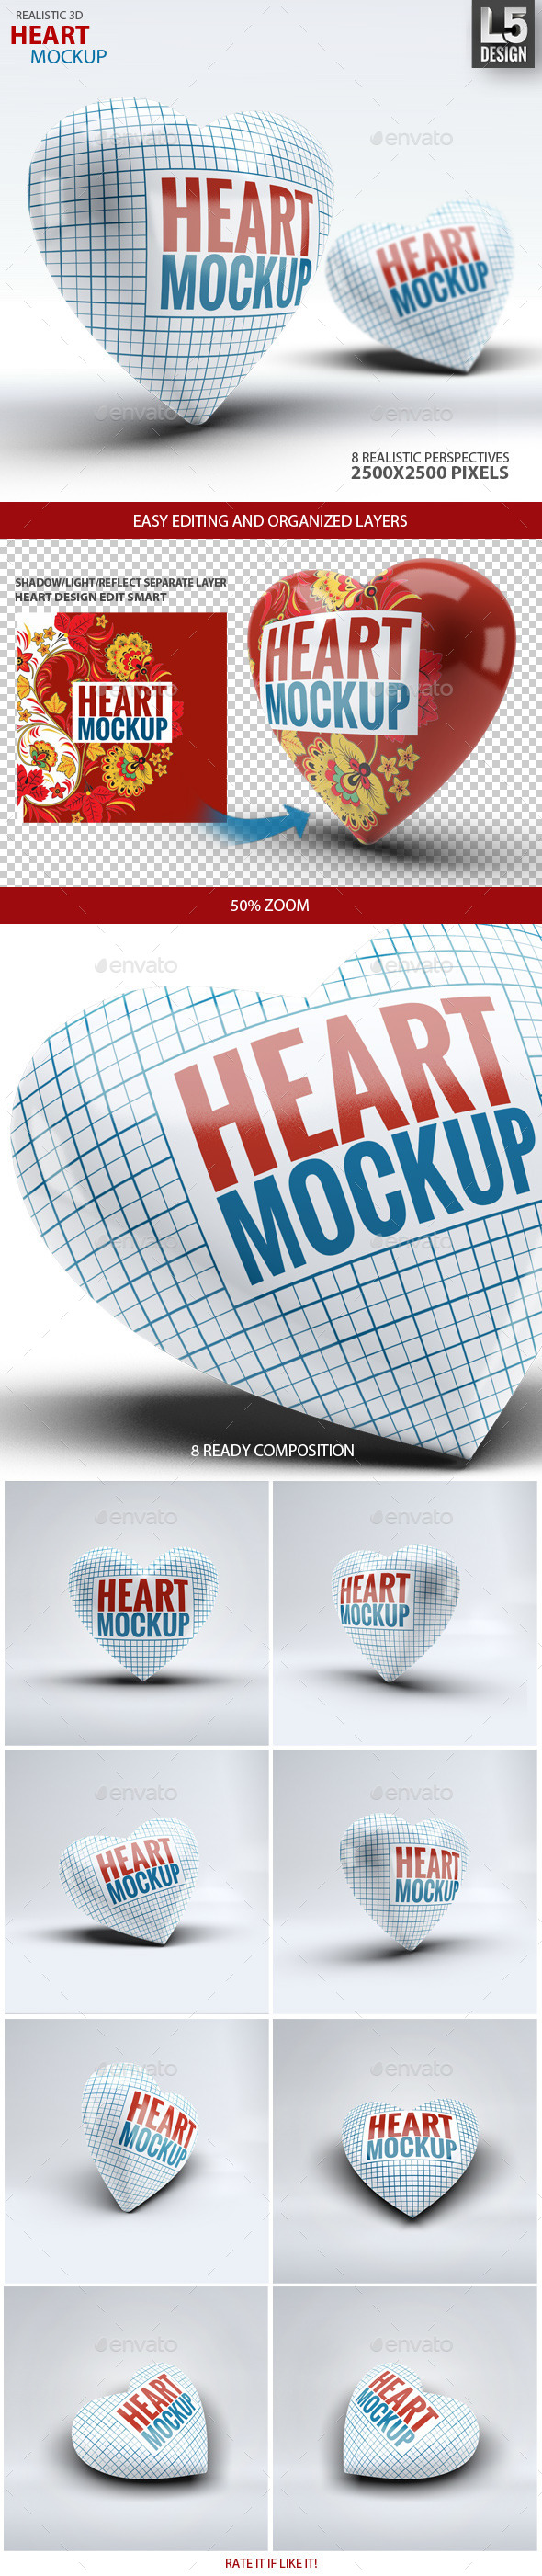 GraphicRiver Heart Mock-Up 9996308